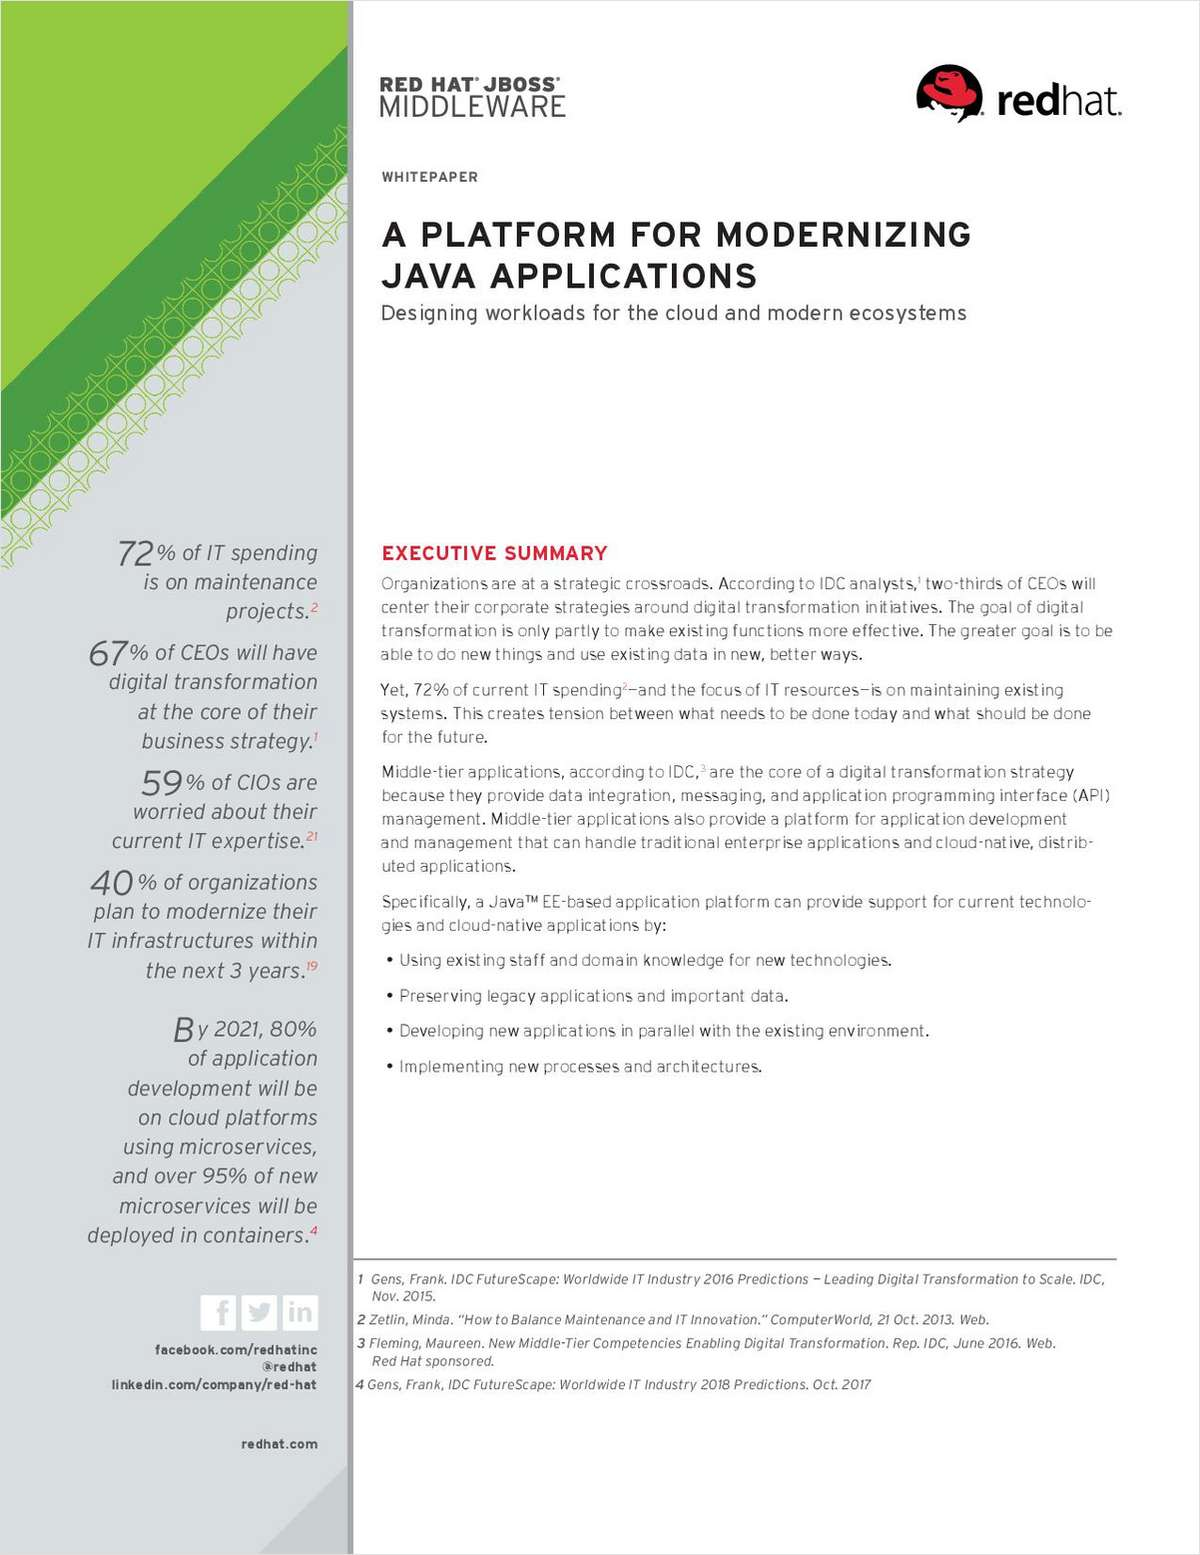 A Platform for Modernizing Java Applications Free White Paper